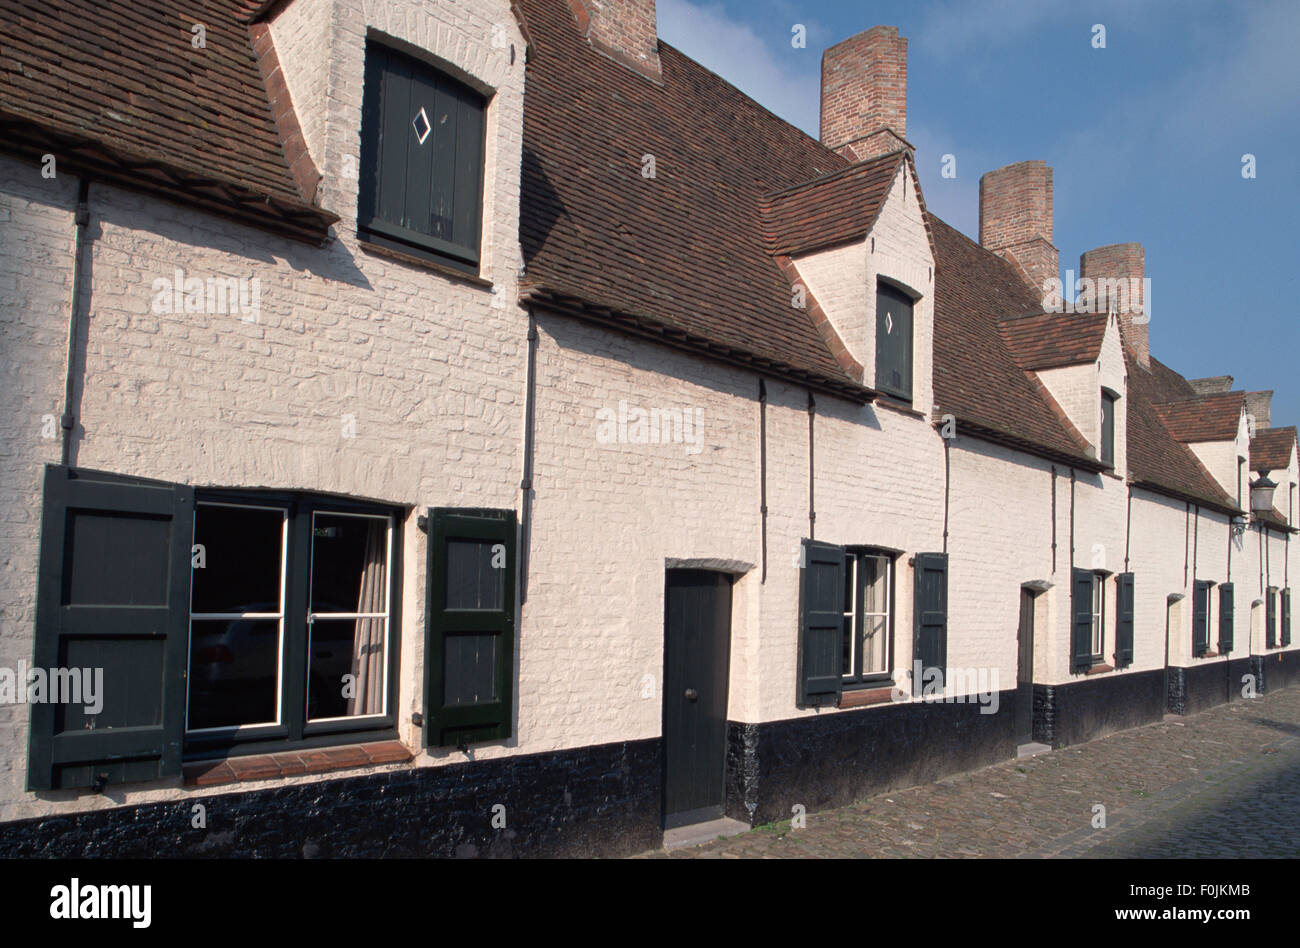 Belgium, Bruges, Museum voor Volkskunde, seventeenth century white washed brick almshouses of the folk museum. - Stock Image